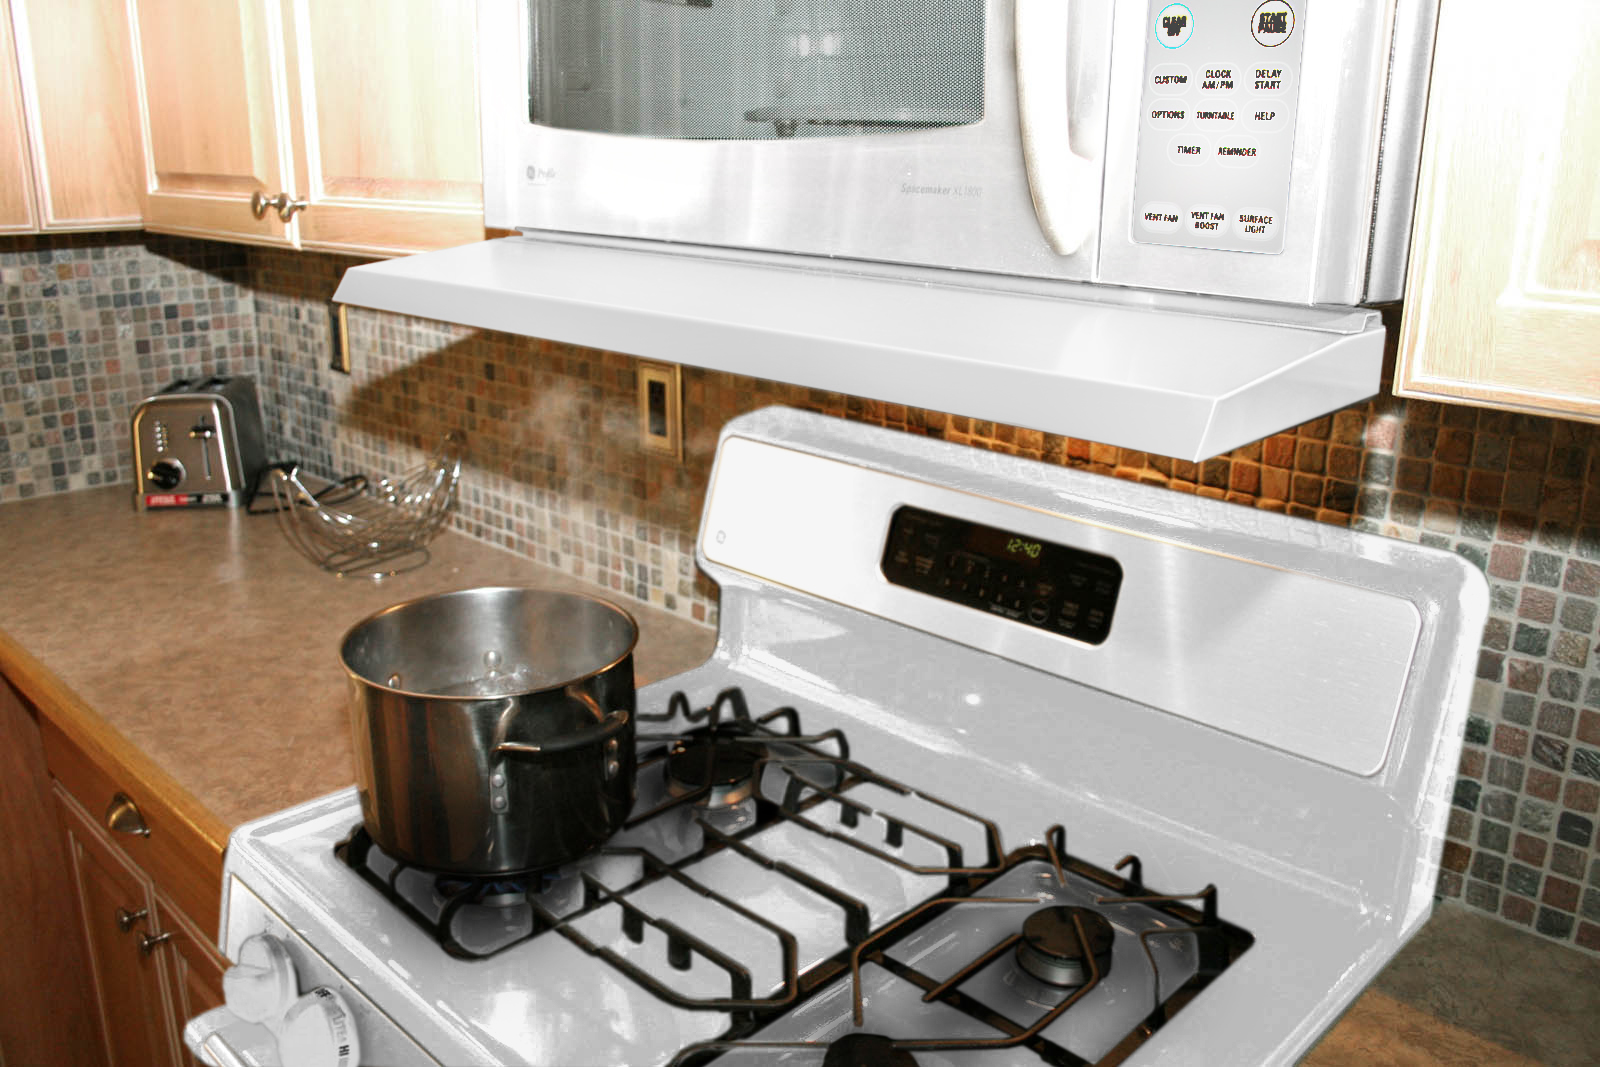 microvisor removable mini hood extension for microwave over the range white